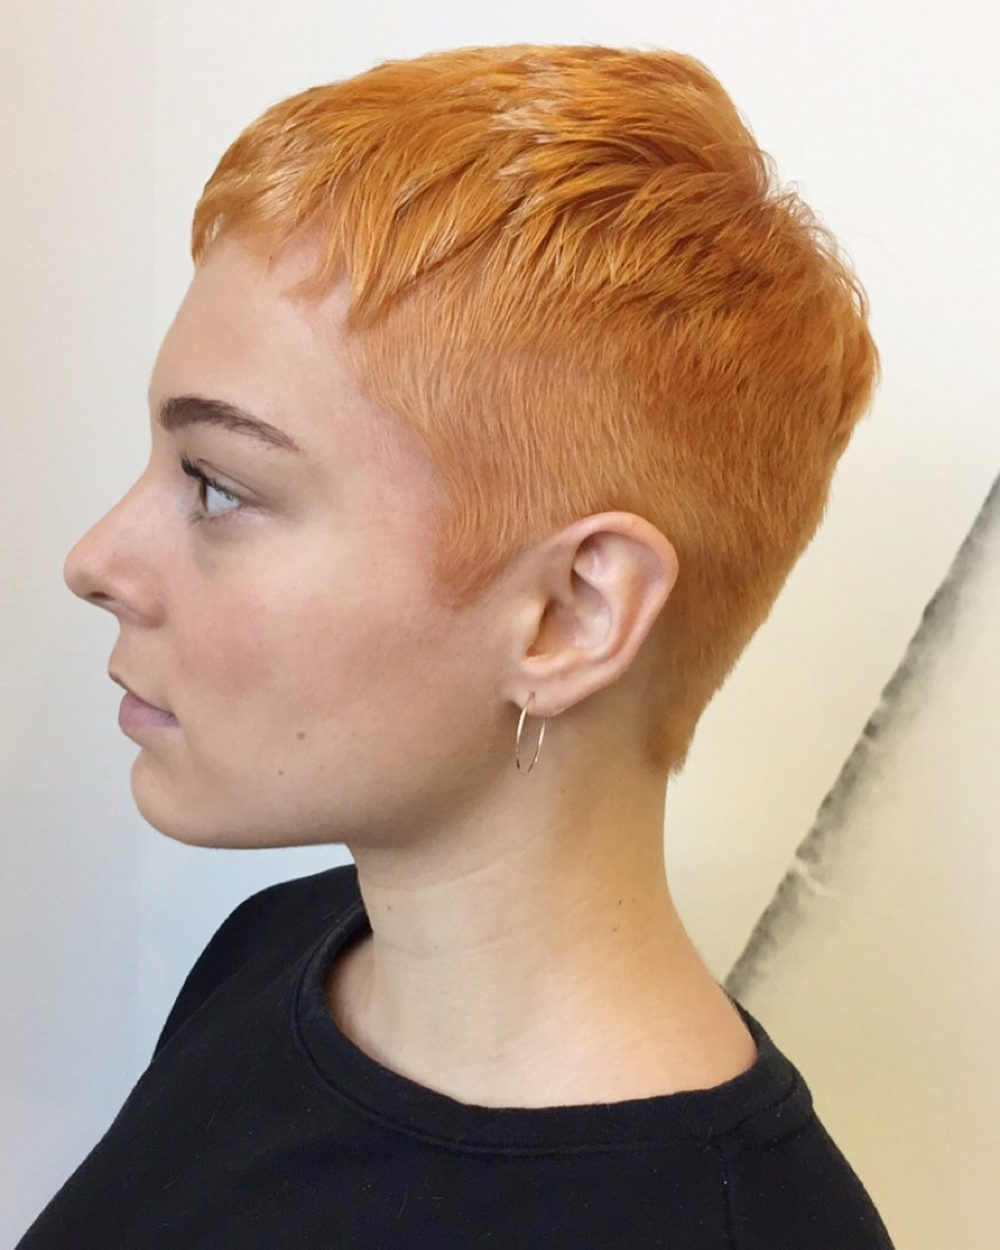 27 Very Short Haircuts You Have To See In 2018 In Women Short Hairstyles For Oval Faces (View 25 of 25)